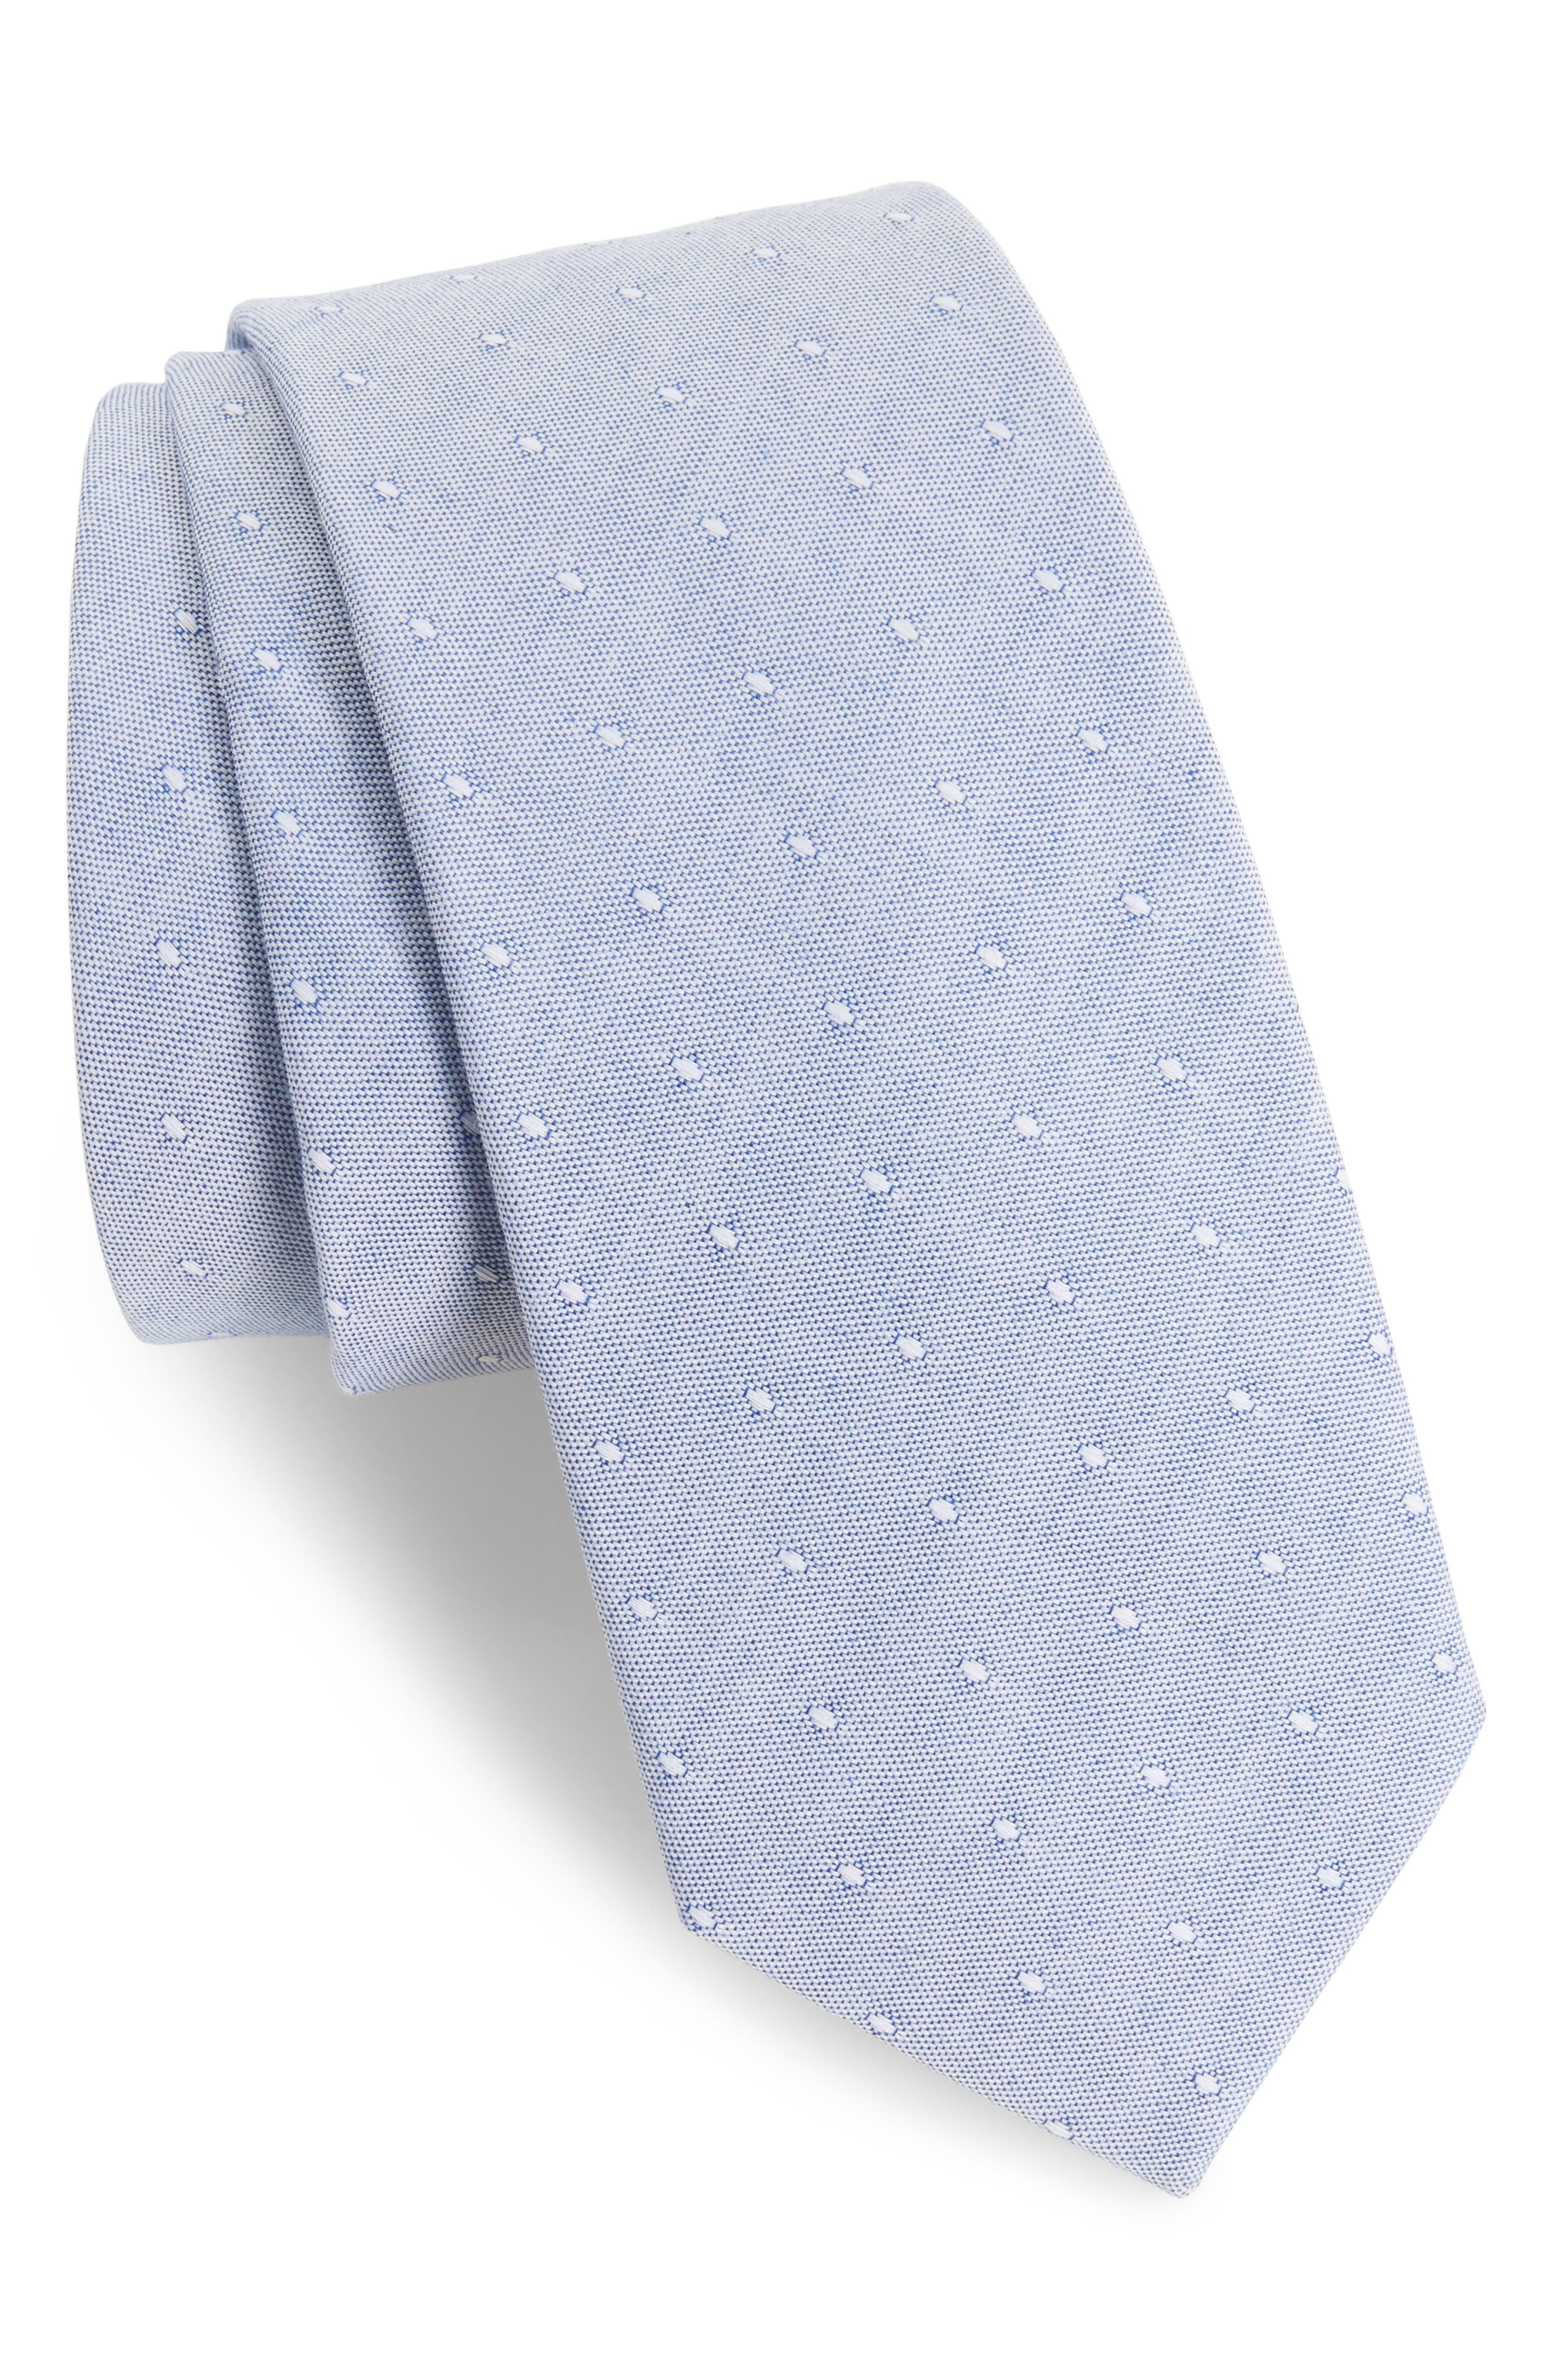 Main Image - 1901 Lantana Dot Cotton Skinny Tie